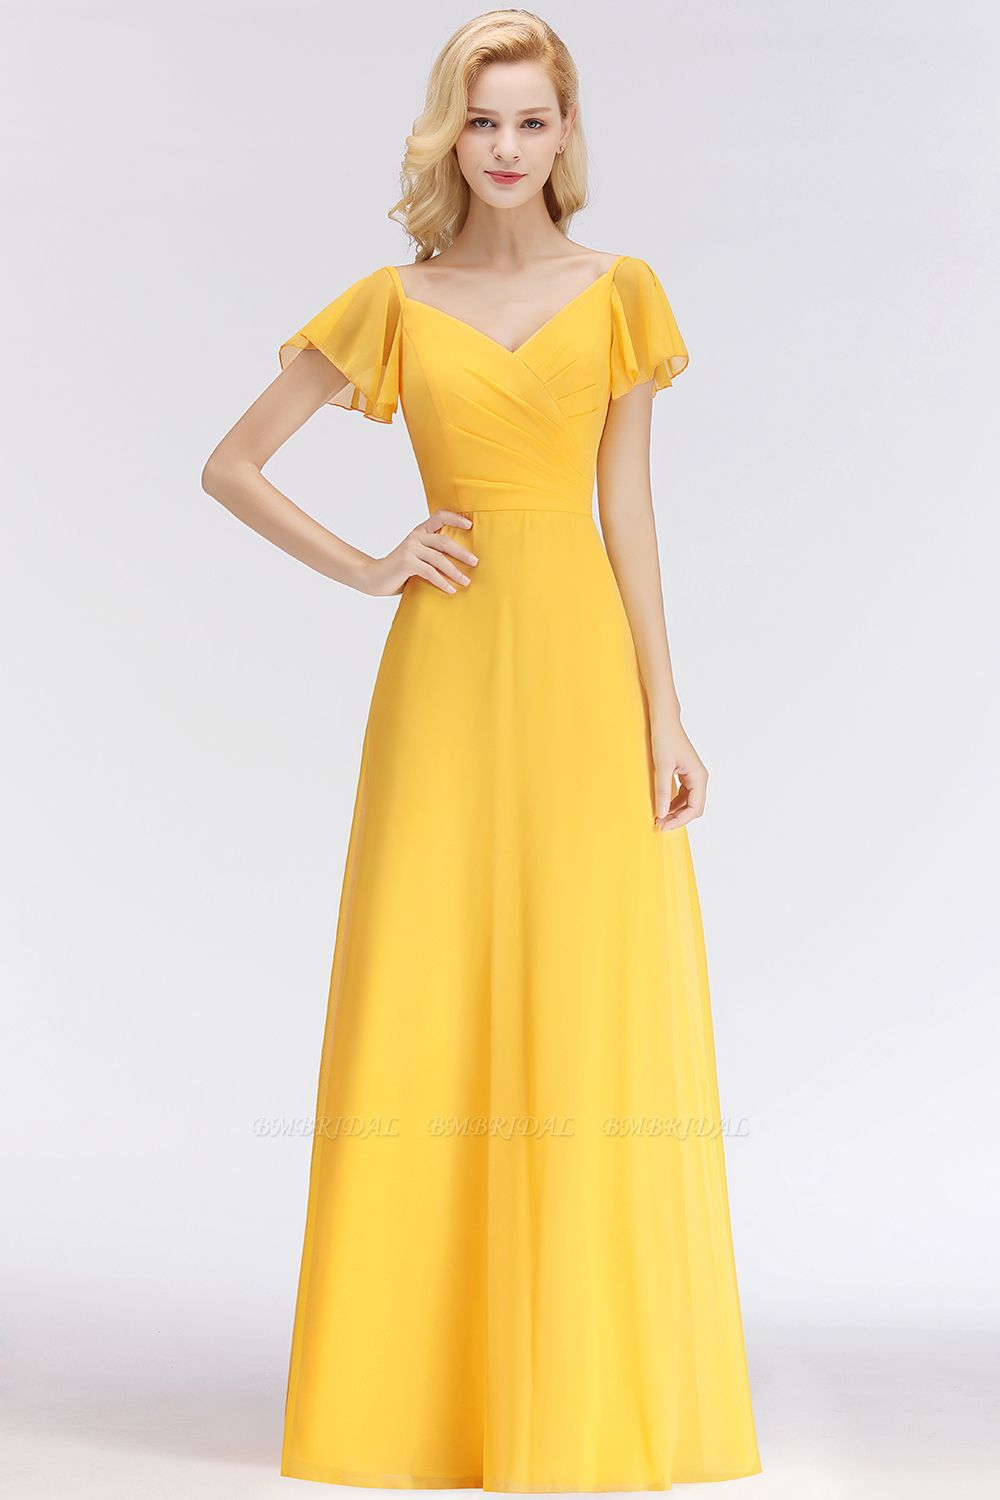 BMbridal Offering A Great Deal Of Affordable Bridesmaid Dresses Of High Quality